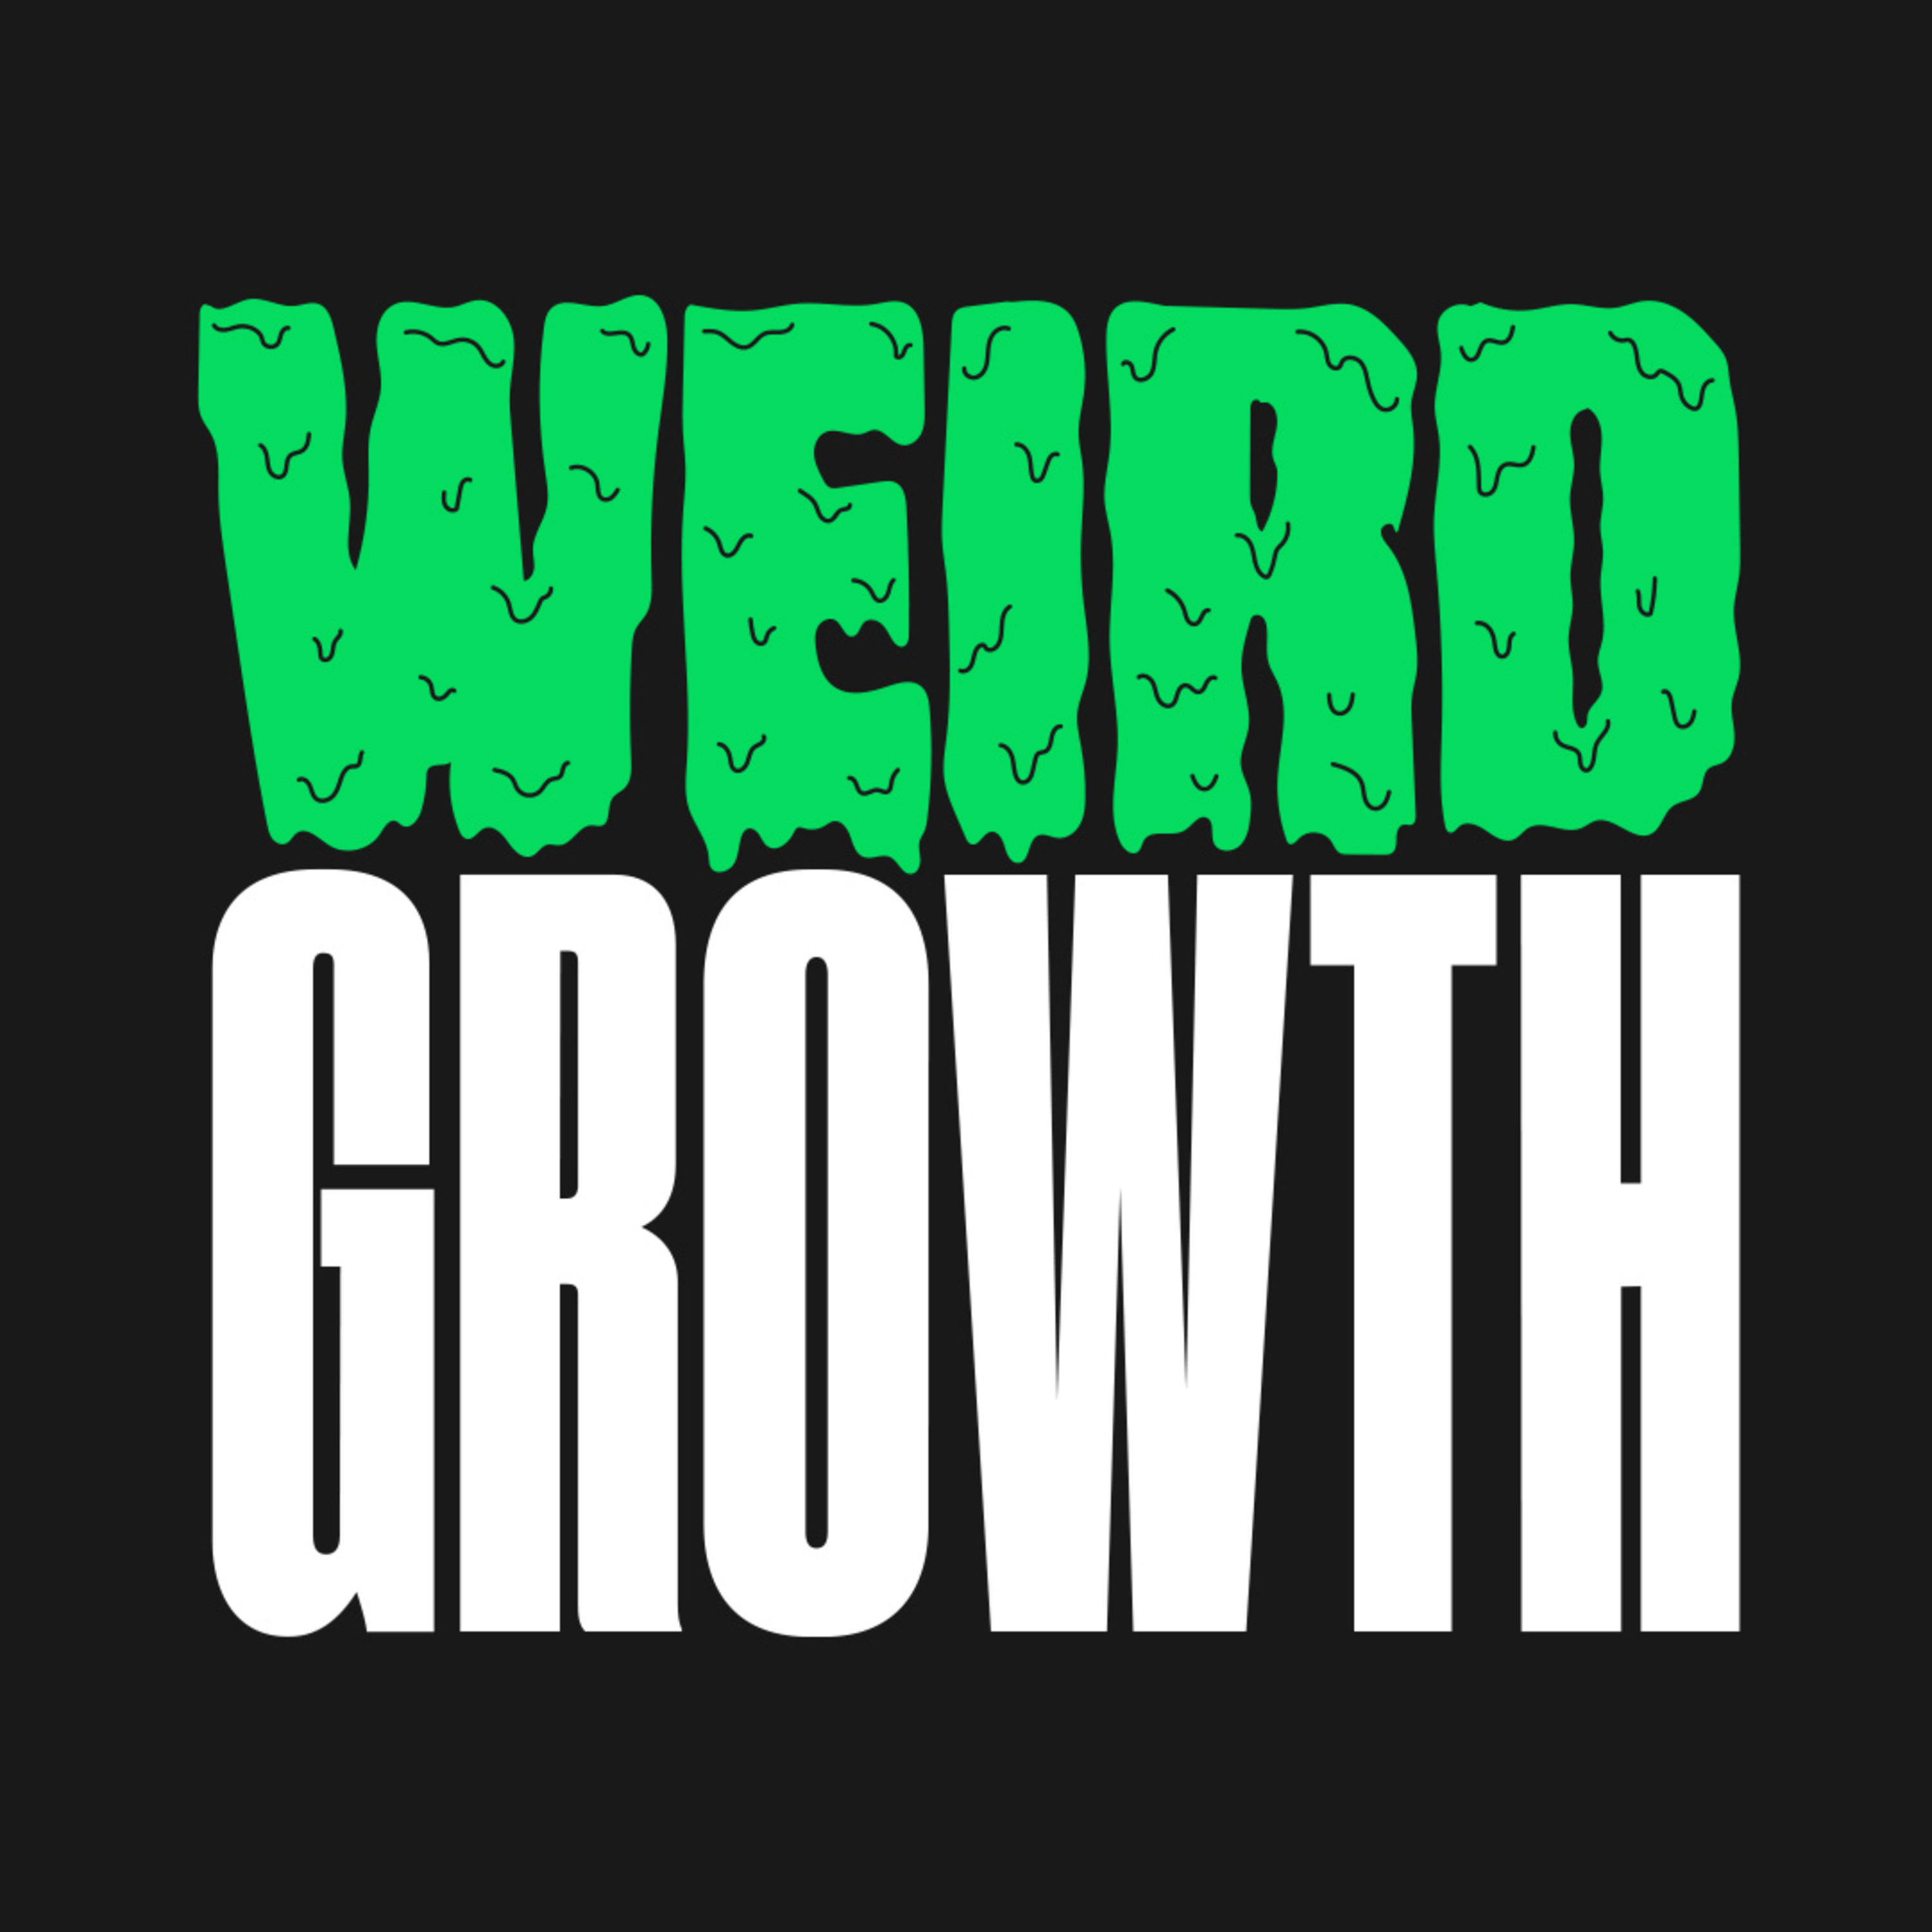 Weird Growth by Ammo Marketing #2 - Trackmysubs / EXTAG - Give The People What They Want